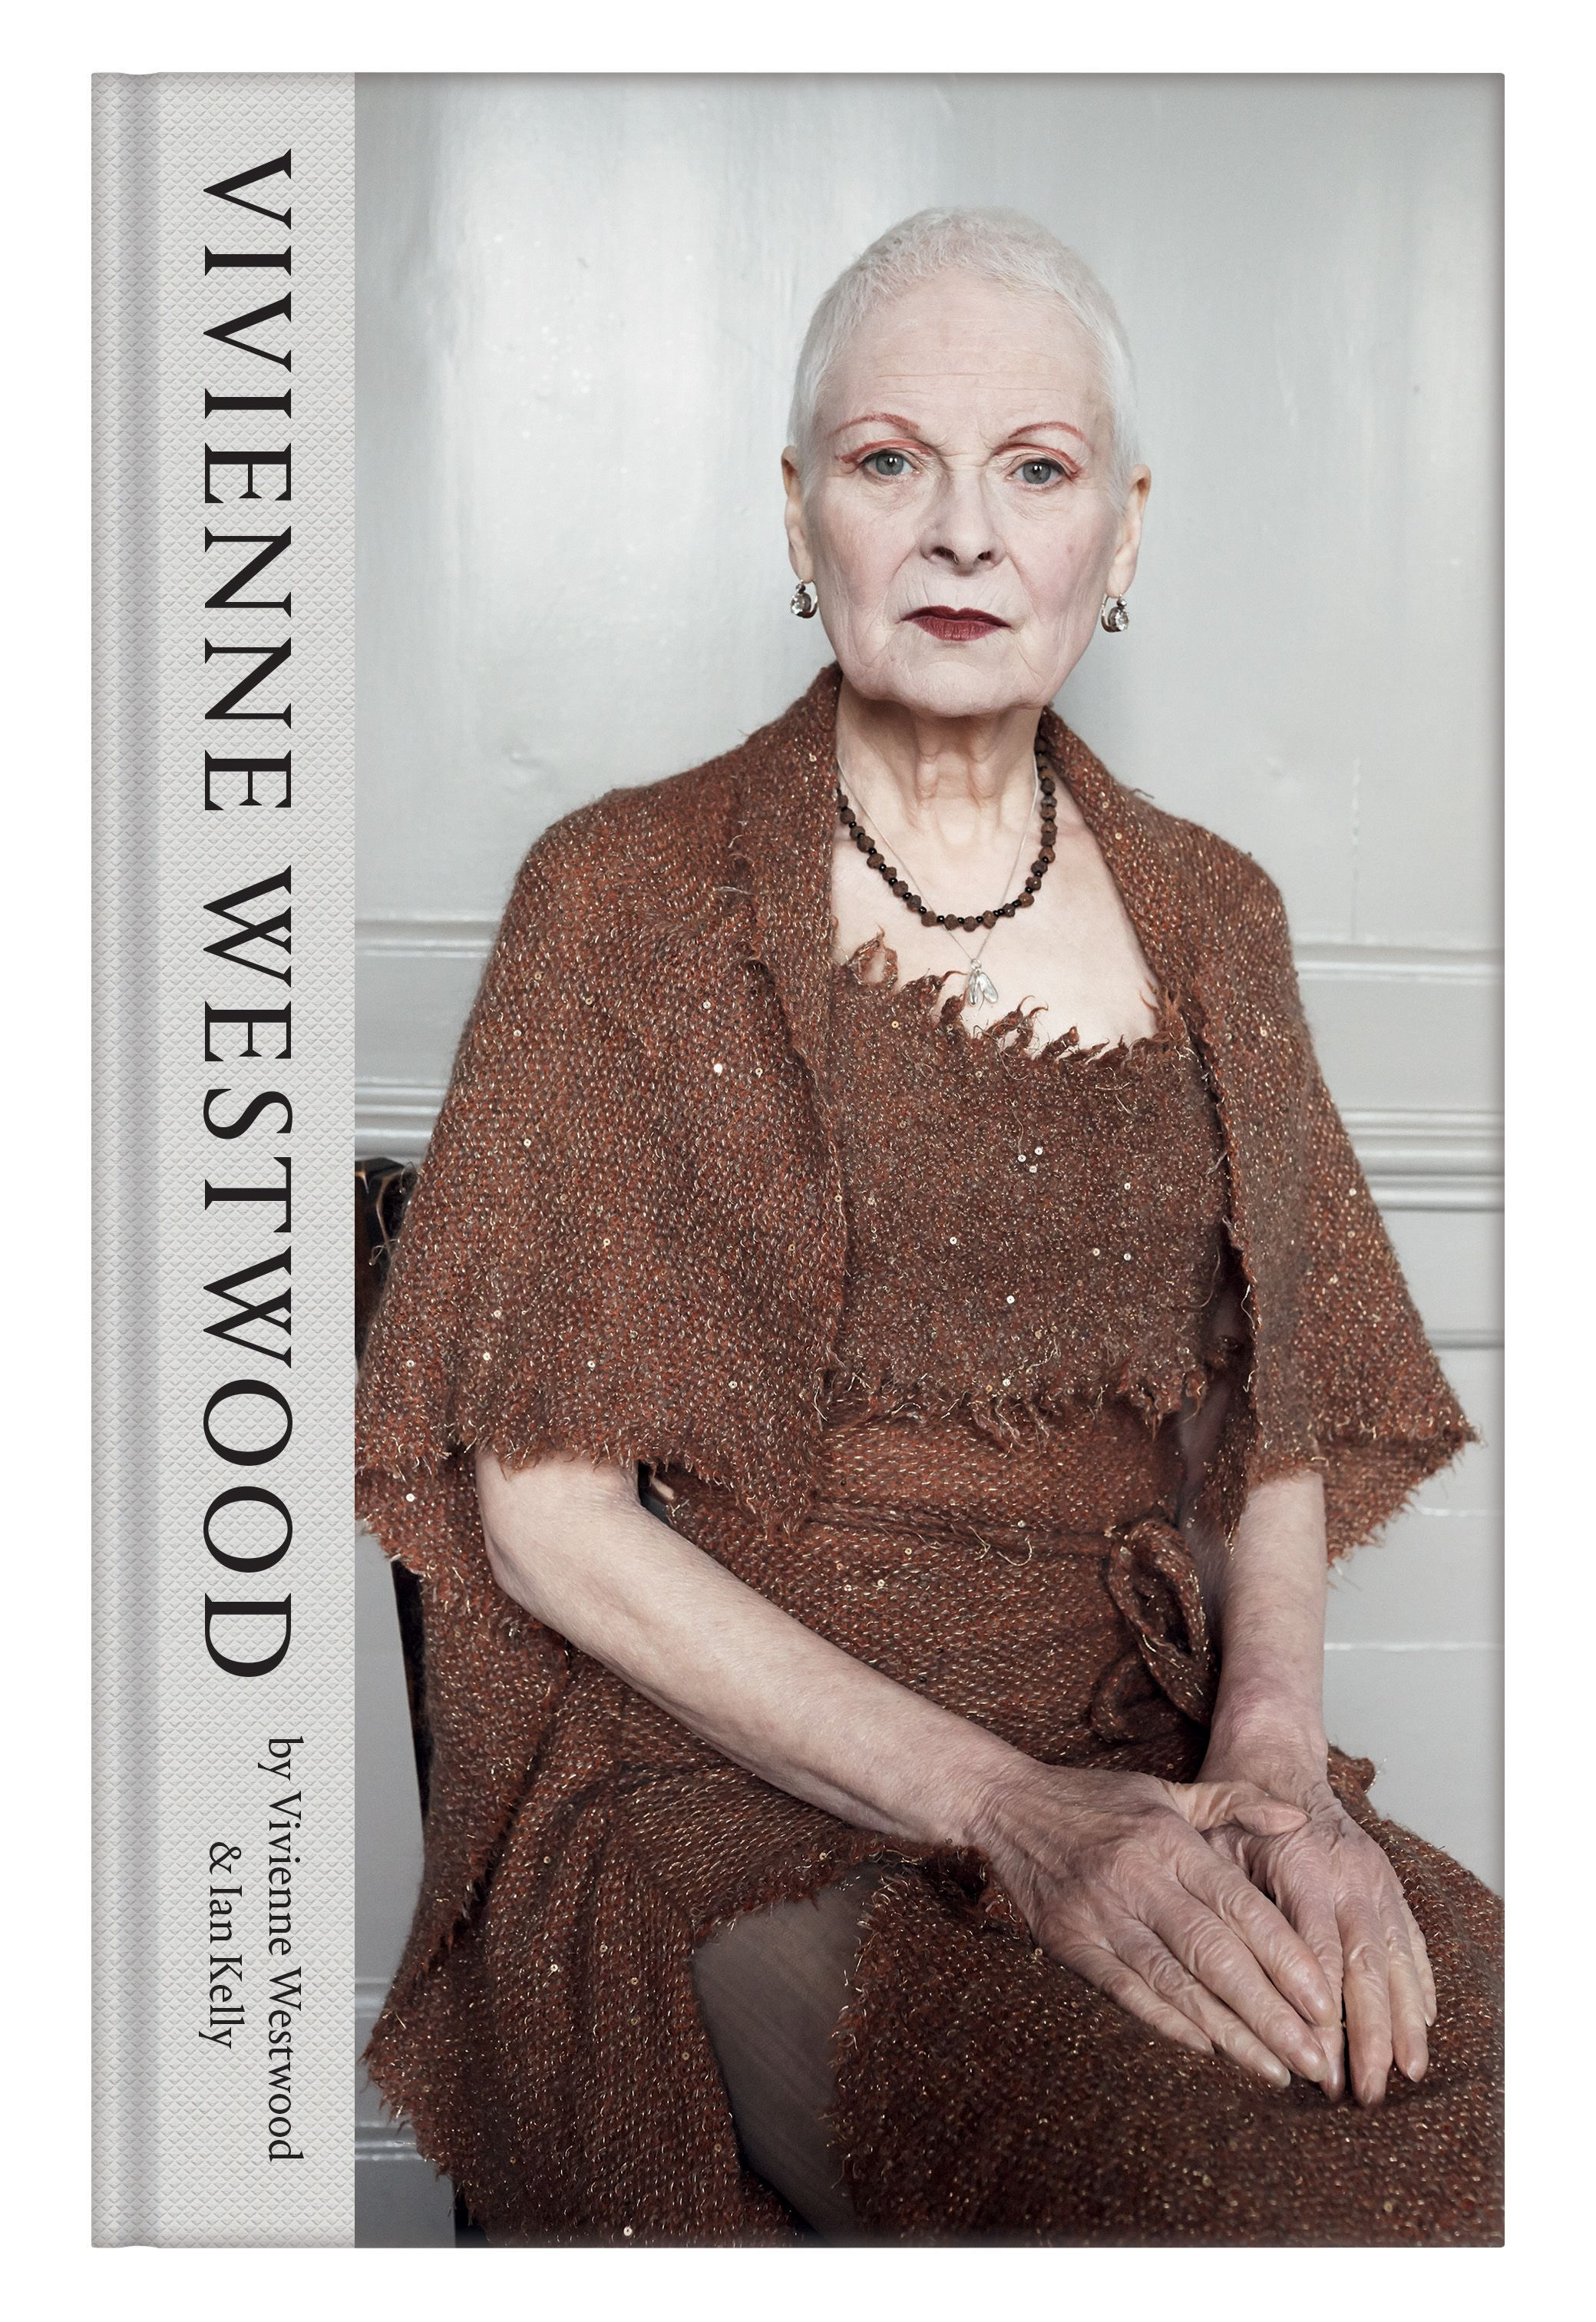 The cover photography by Juergen Teller of Dame Vivienne Westwood's debut biography has been unveiled in full for the first time today.